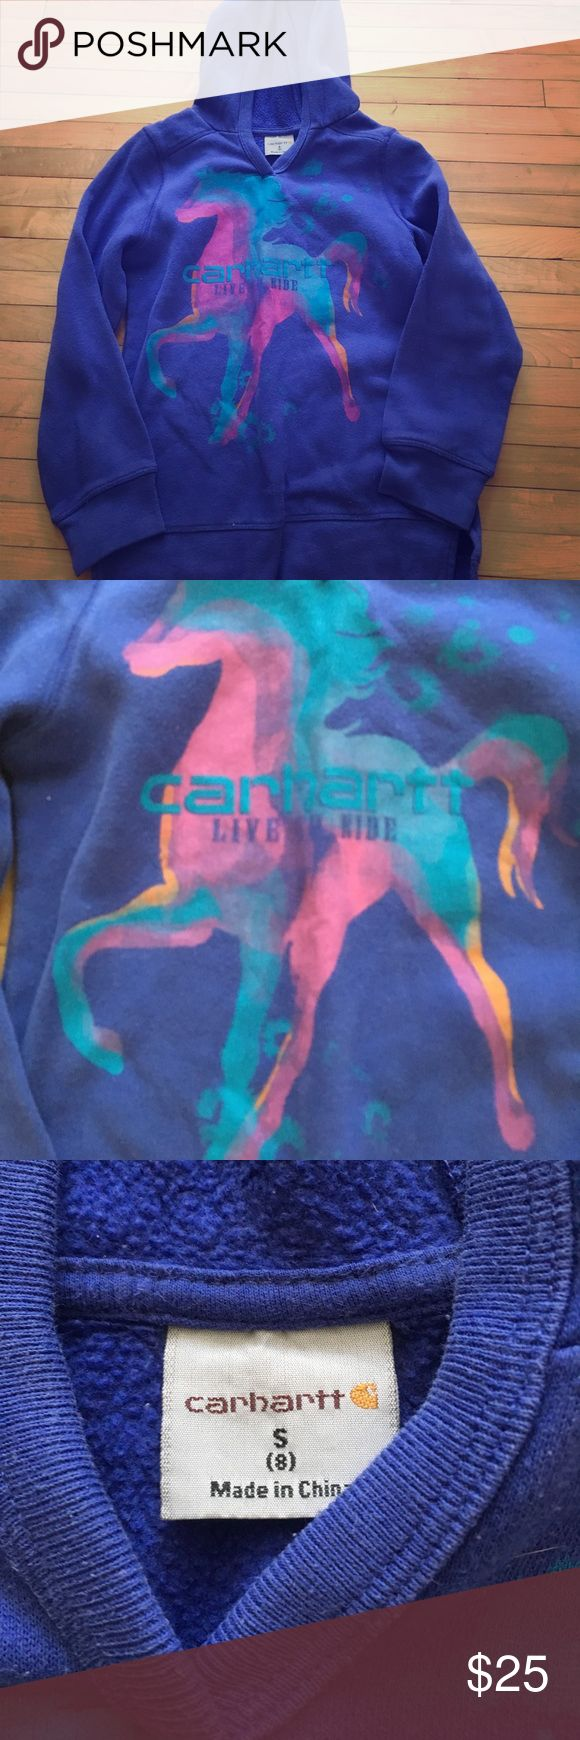 Carhartt brand blue horse sweatshirt girls size 8 Carhartt brand. Size small 8 girls.  made in China. Hooded sweatshirt. Horse multi colored. Live to ride under carhartt brand Carhartt Shirts & Tops Sweatshirts & Hoodies